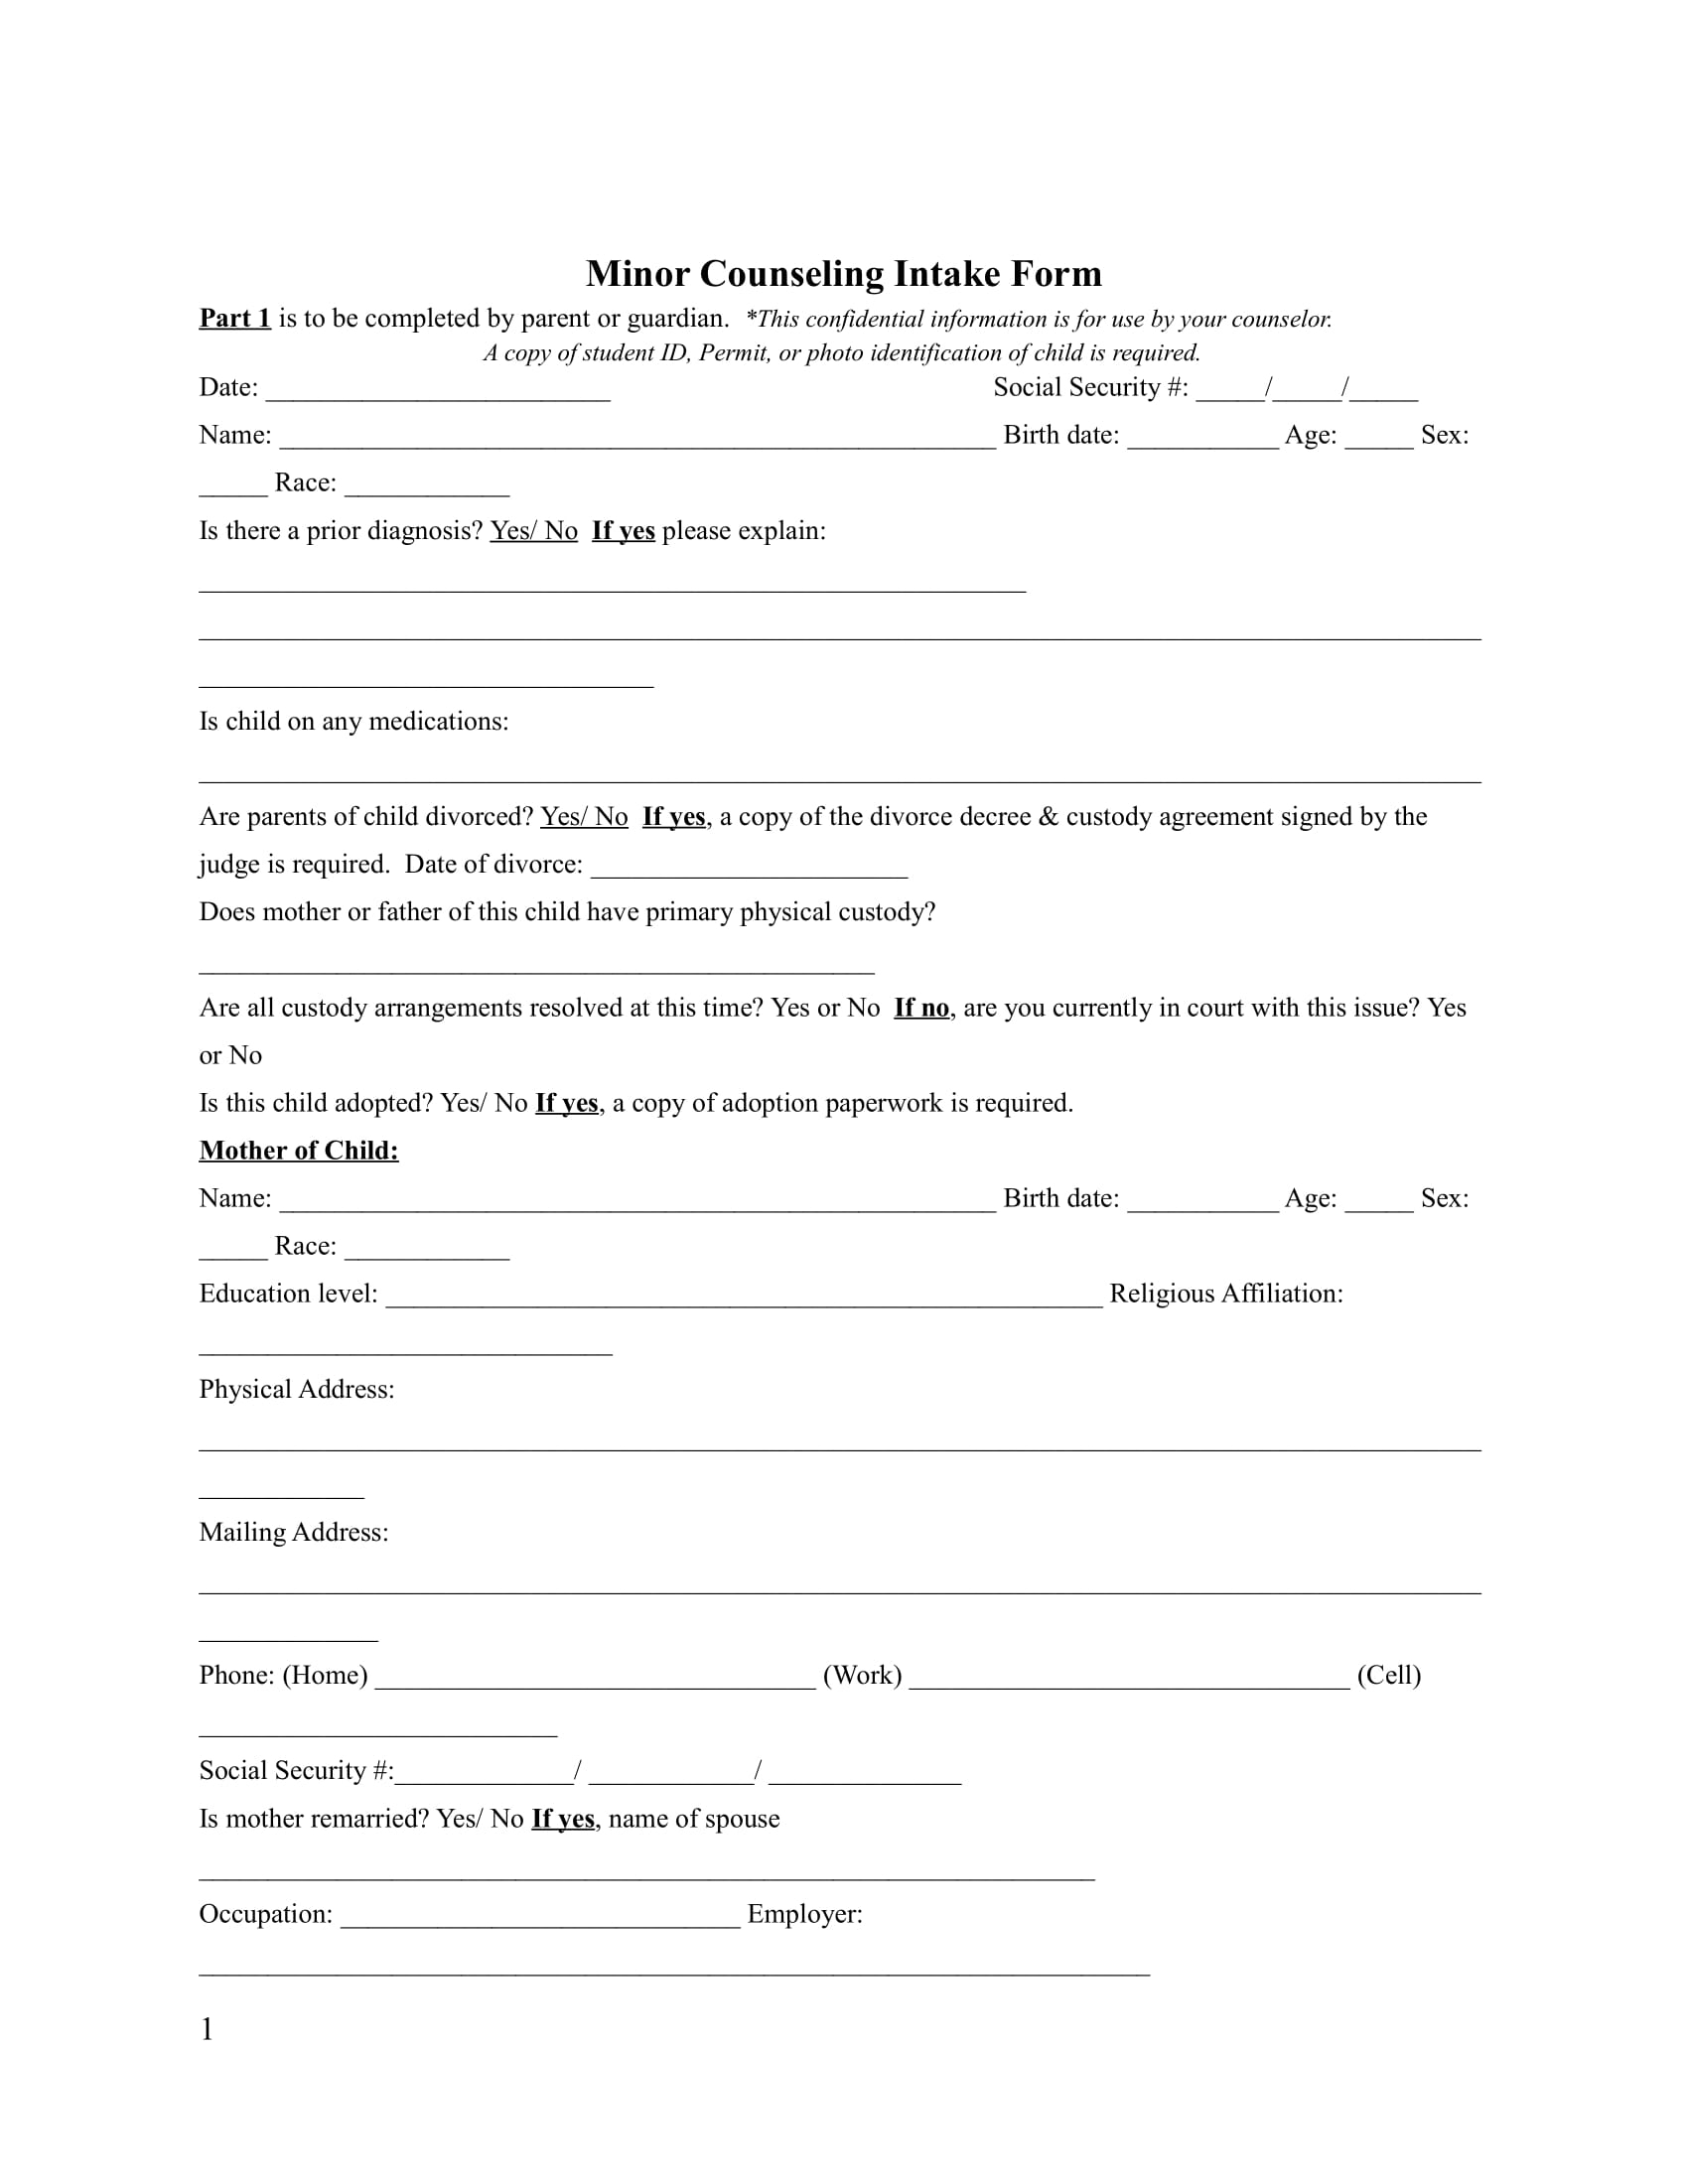 minor counseling intake form 1